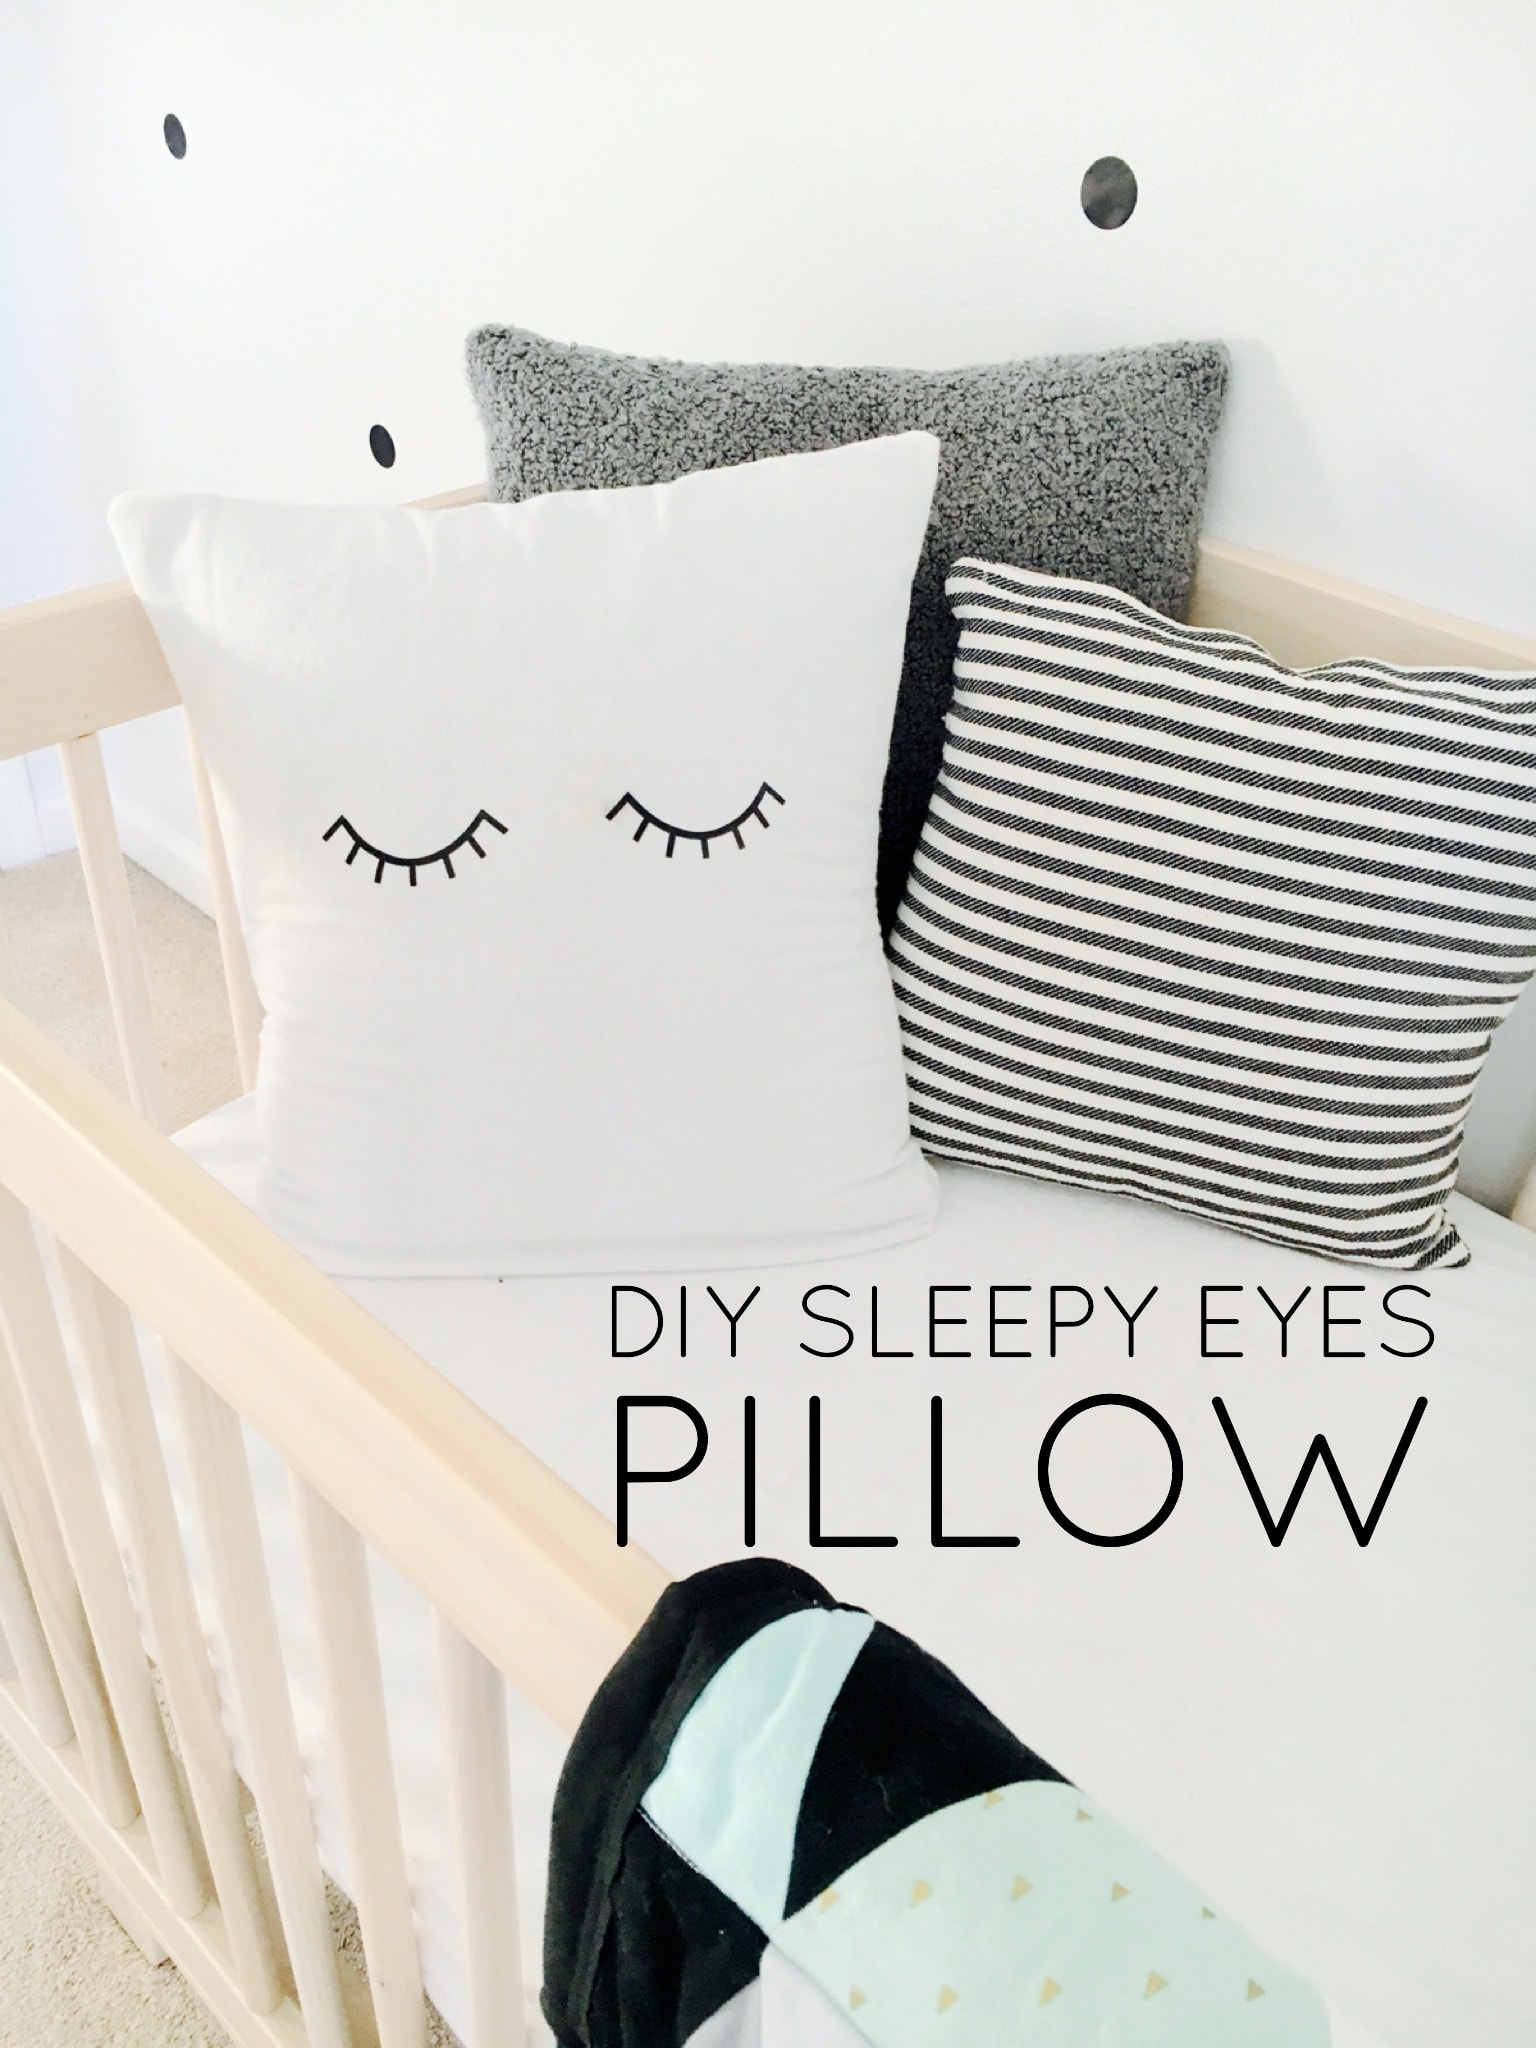 DIY Sleepy Eyes Pillow